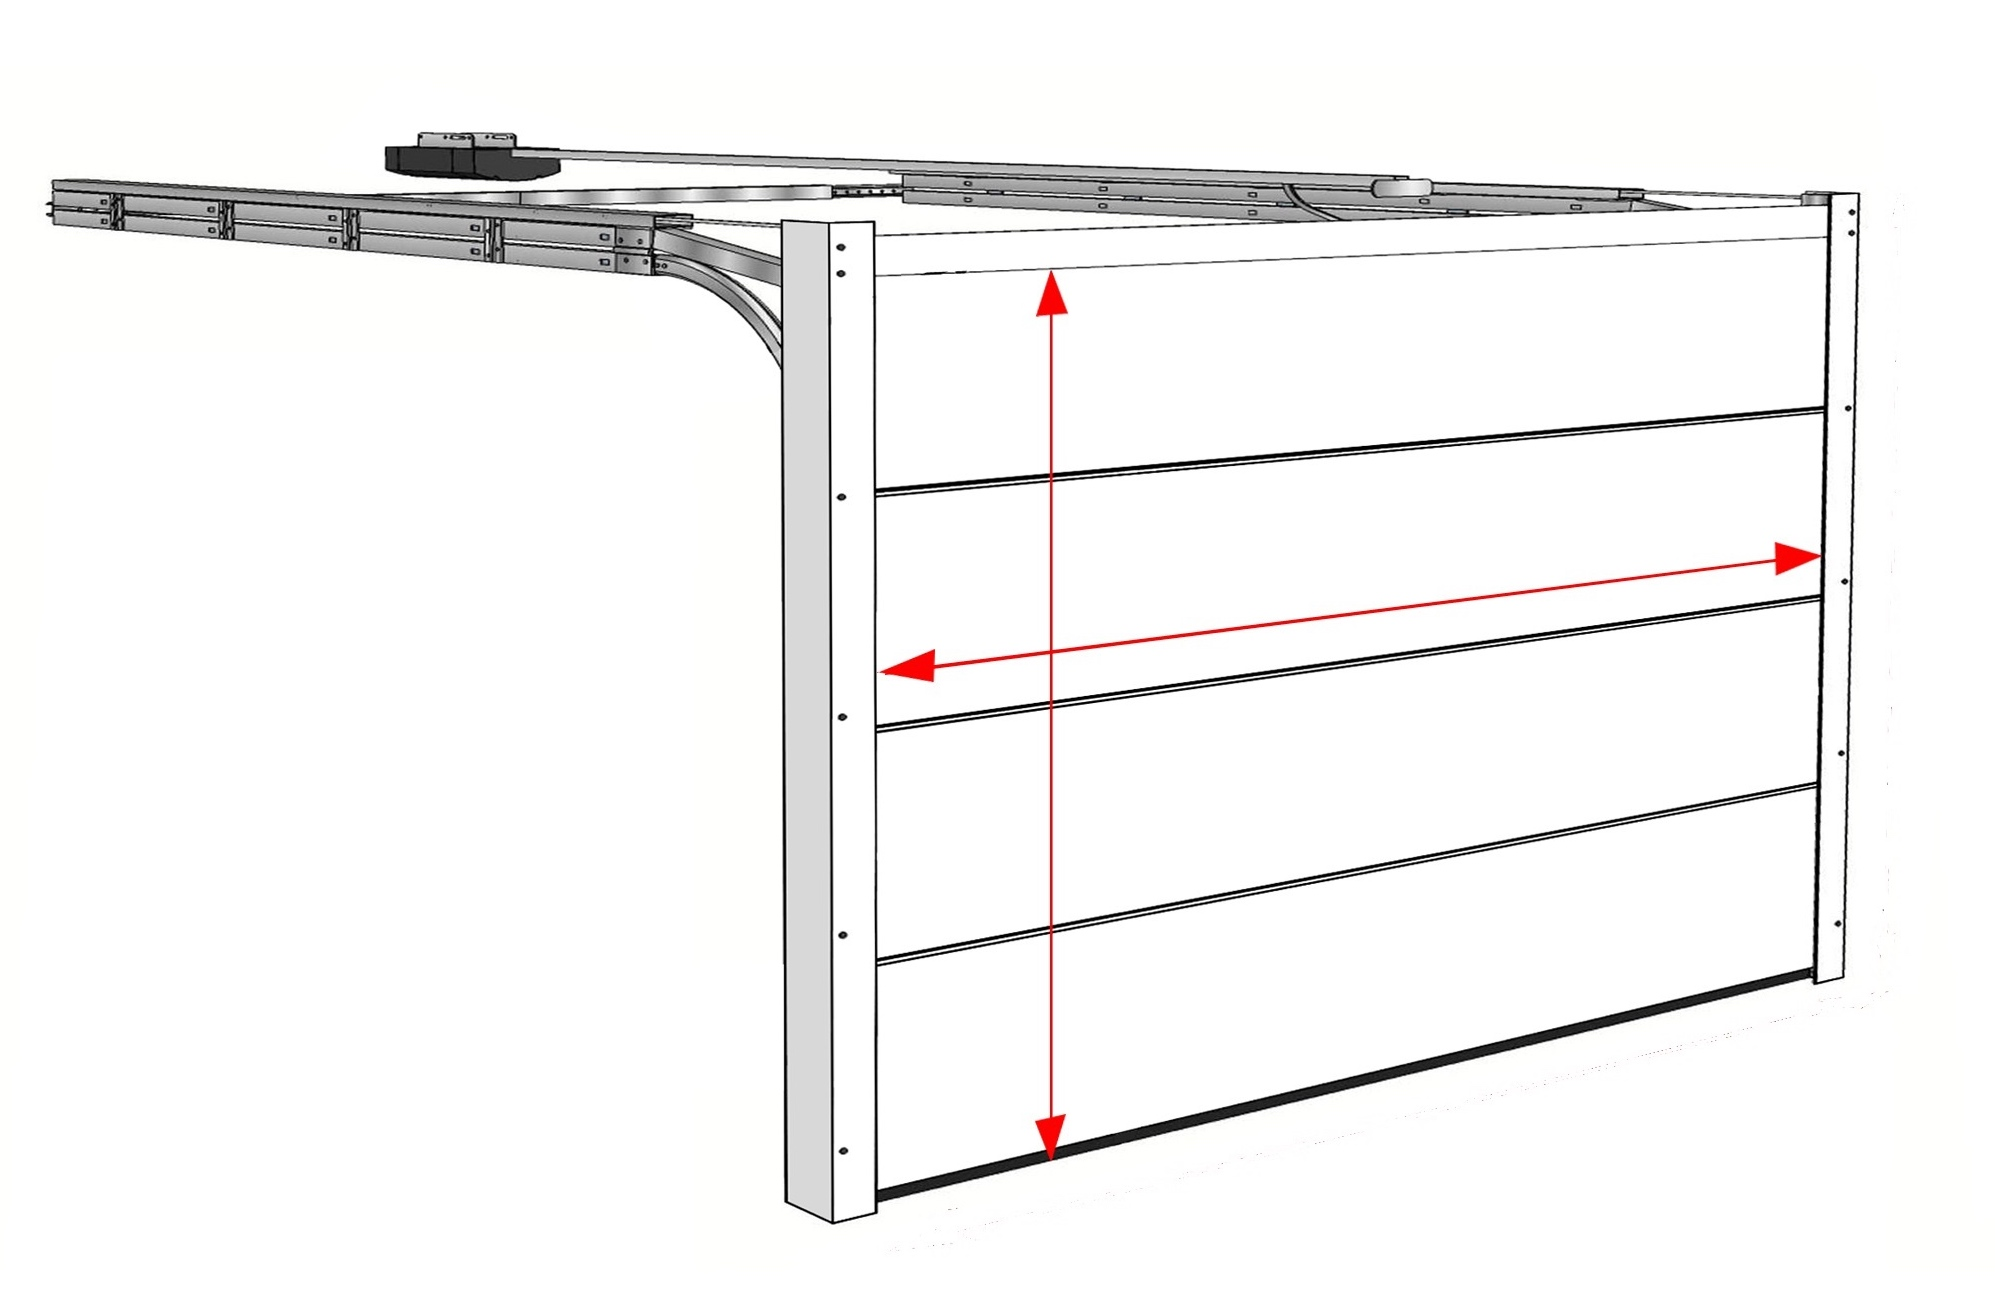 sectional door width and height does not include the frame